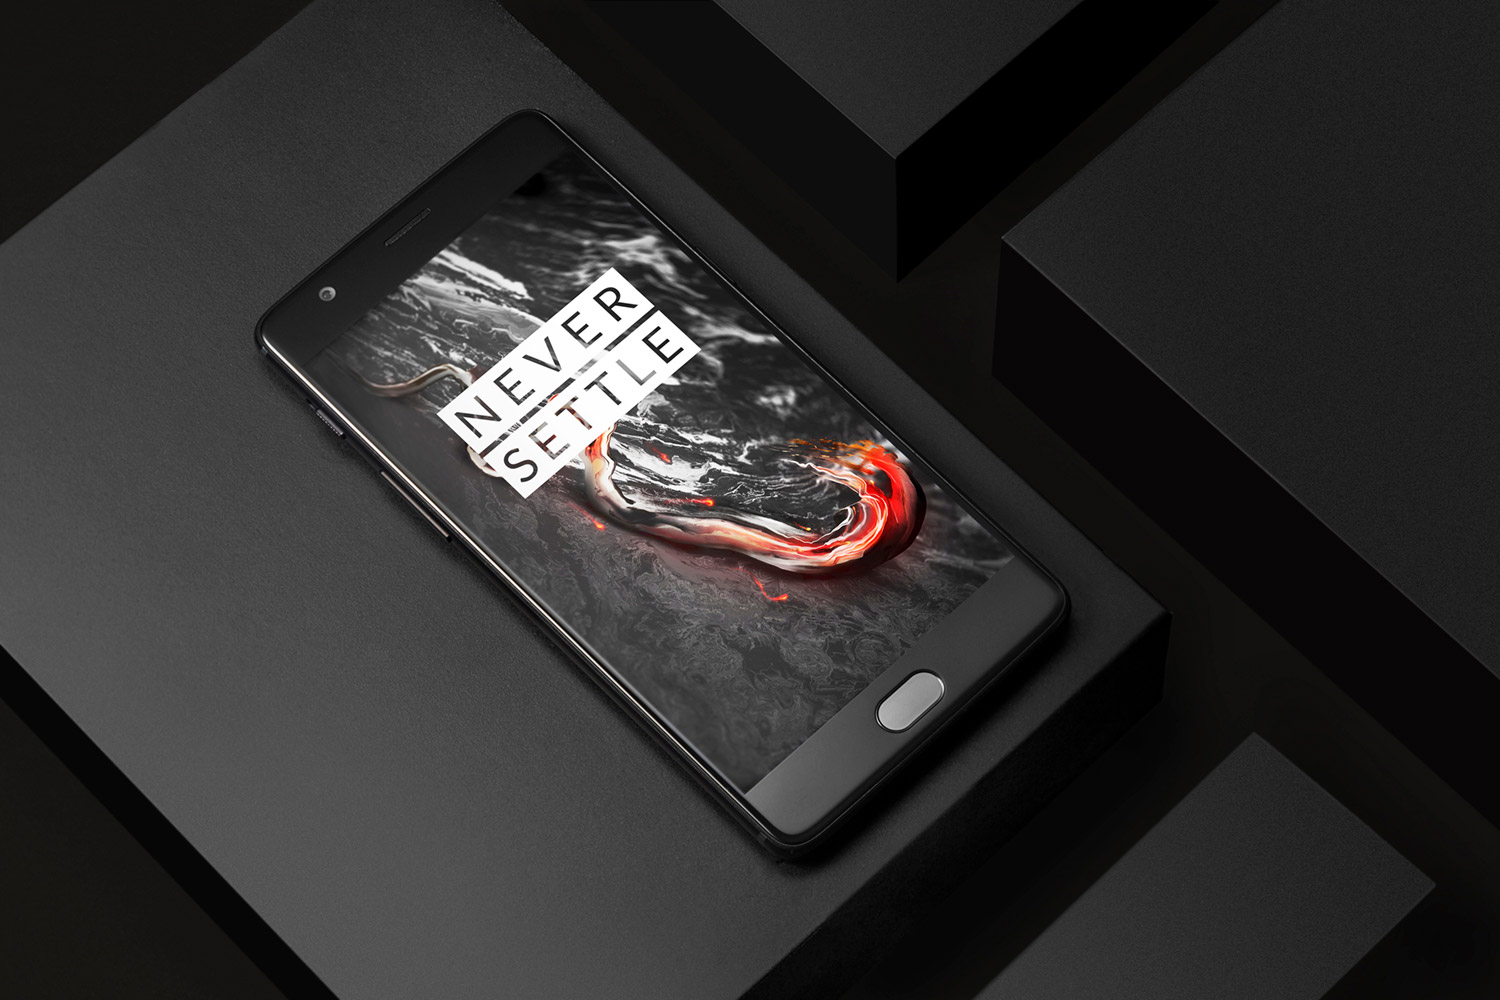 oneplus 3t midnight black display